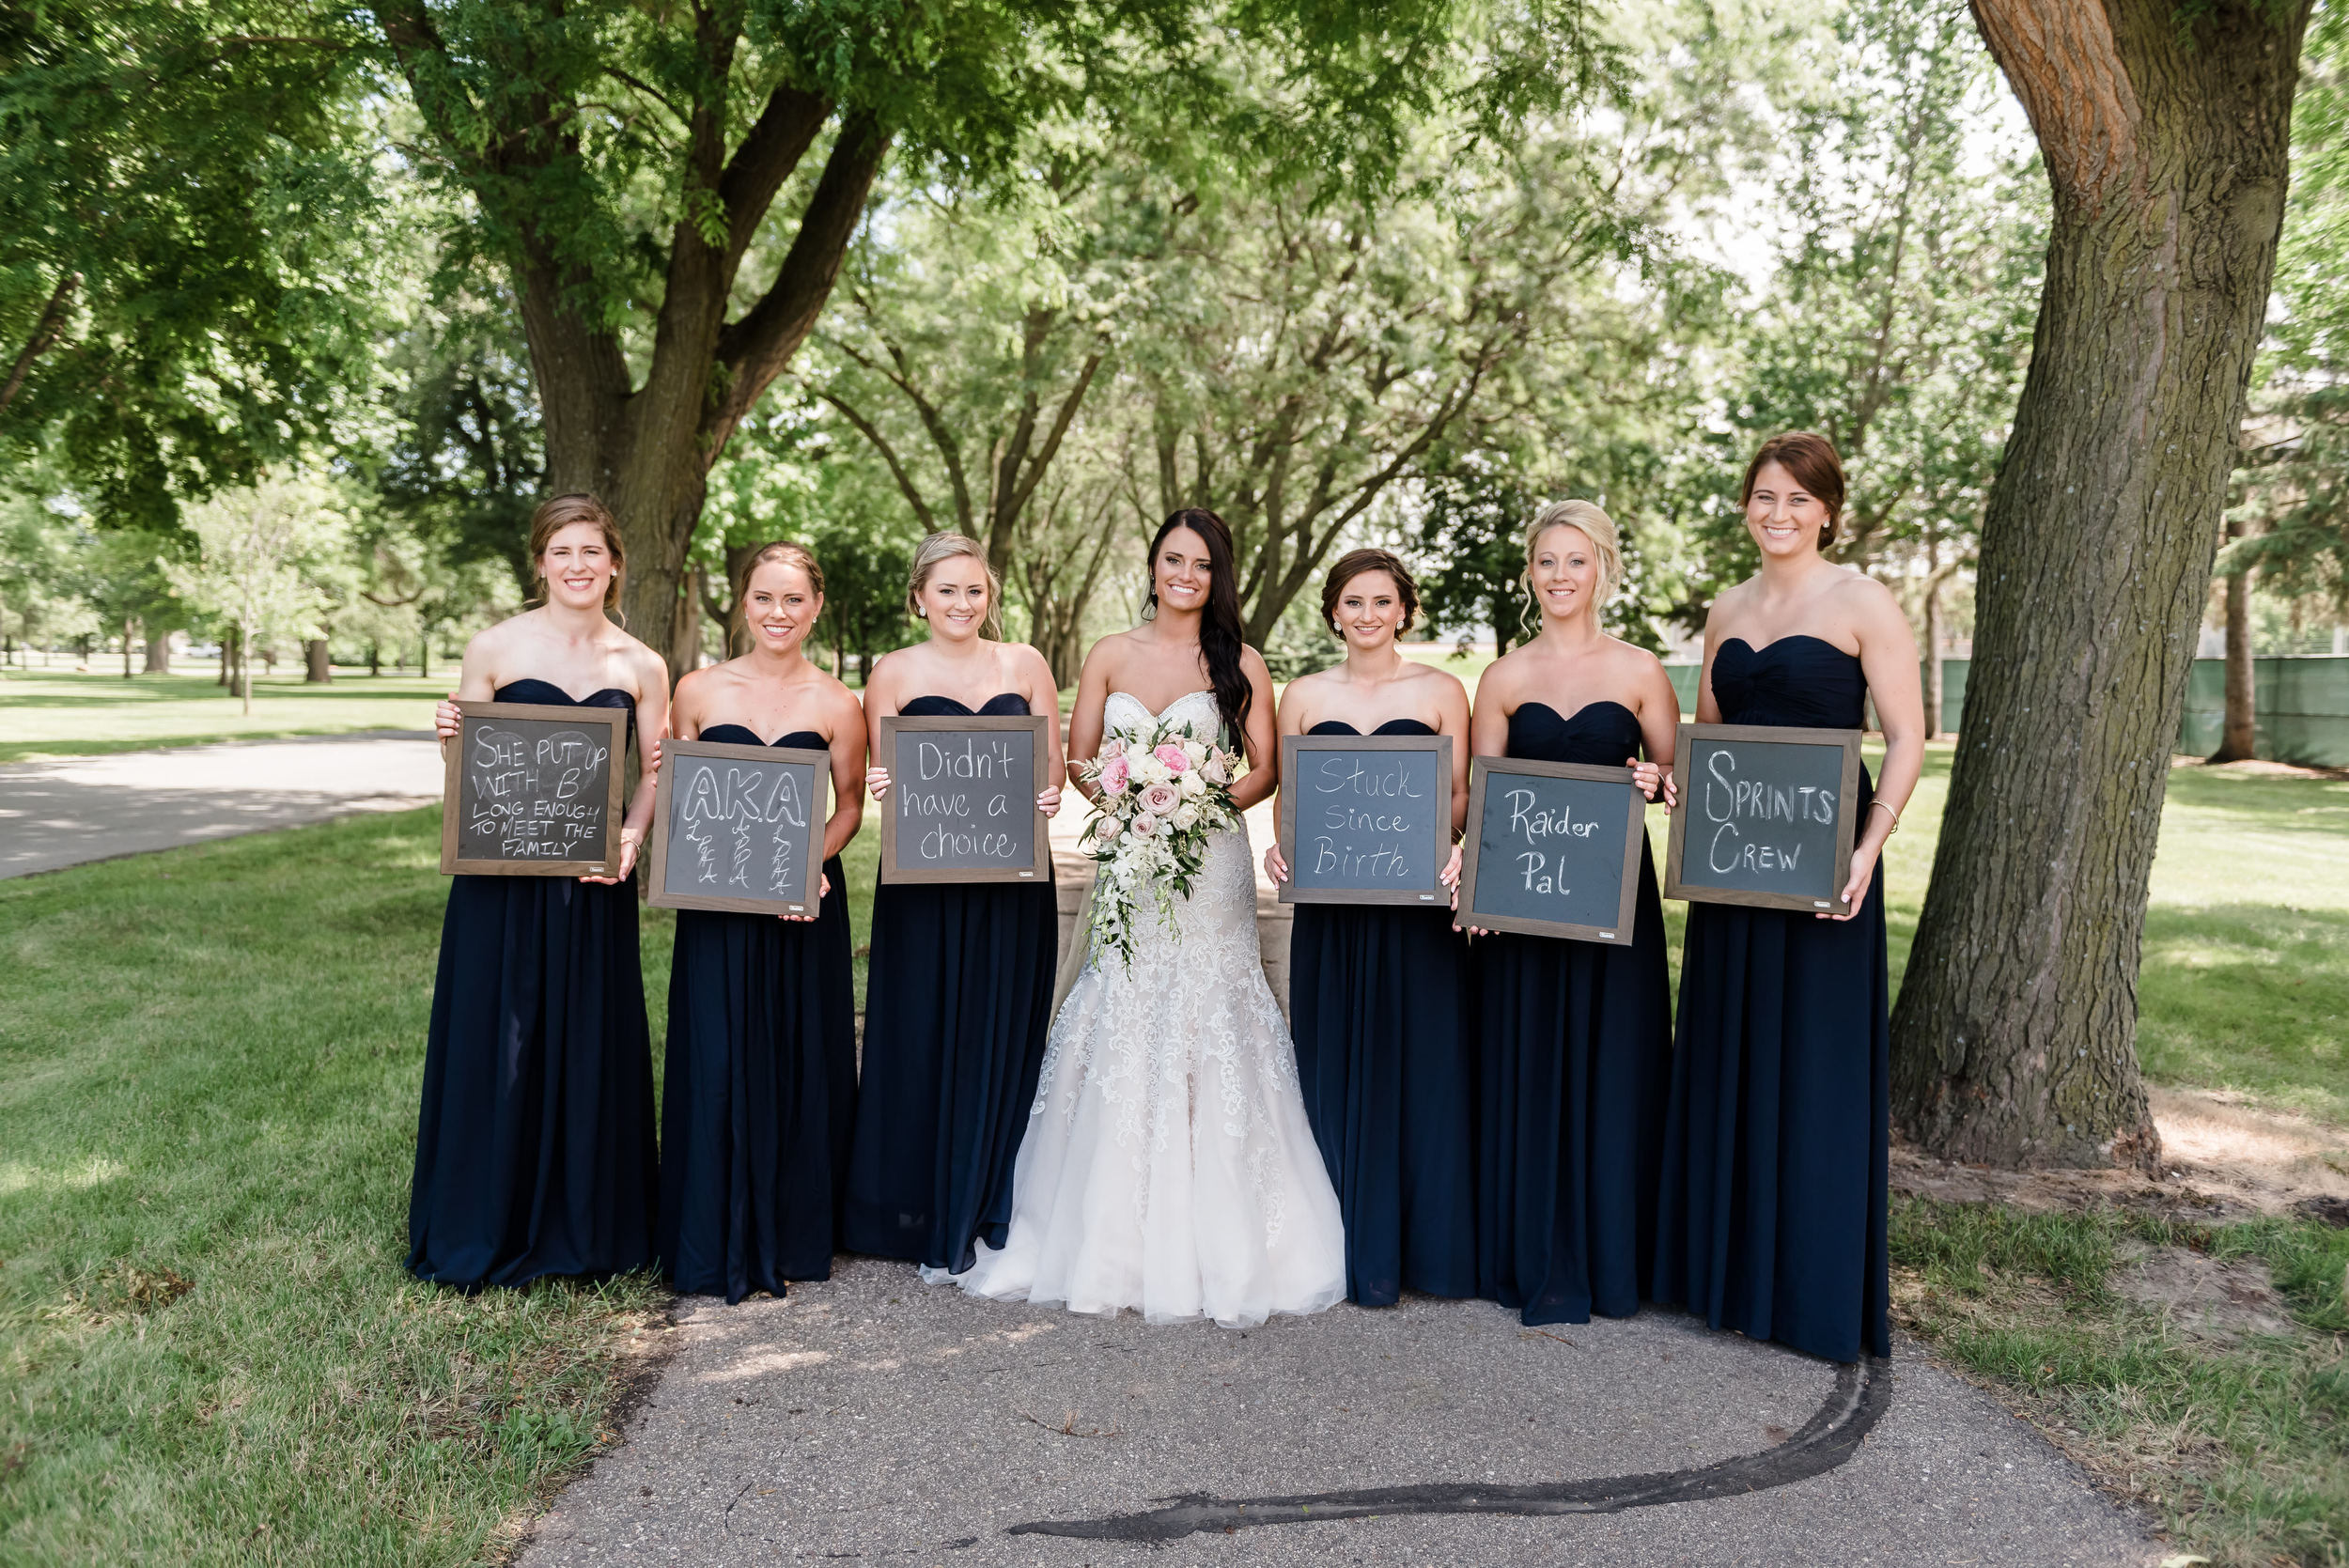 Layce and Brandon - Wedding - Bridal Party and Family - Outdoor Portraits-42.jpg